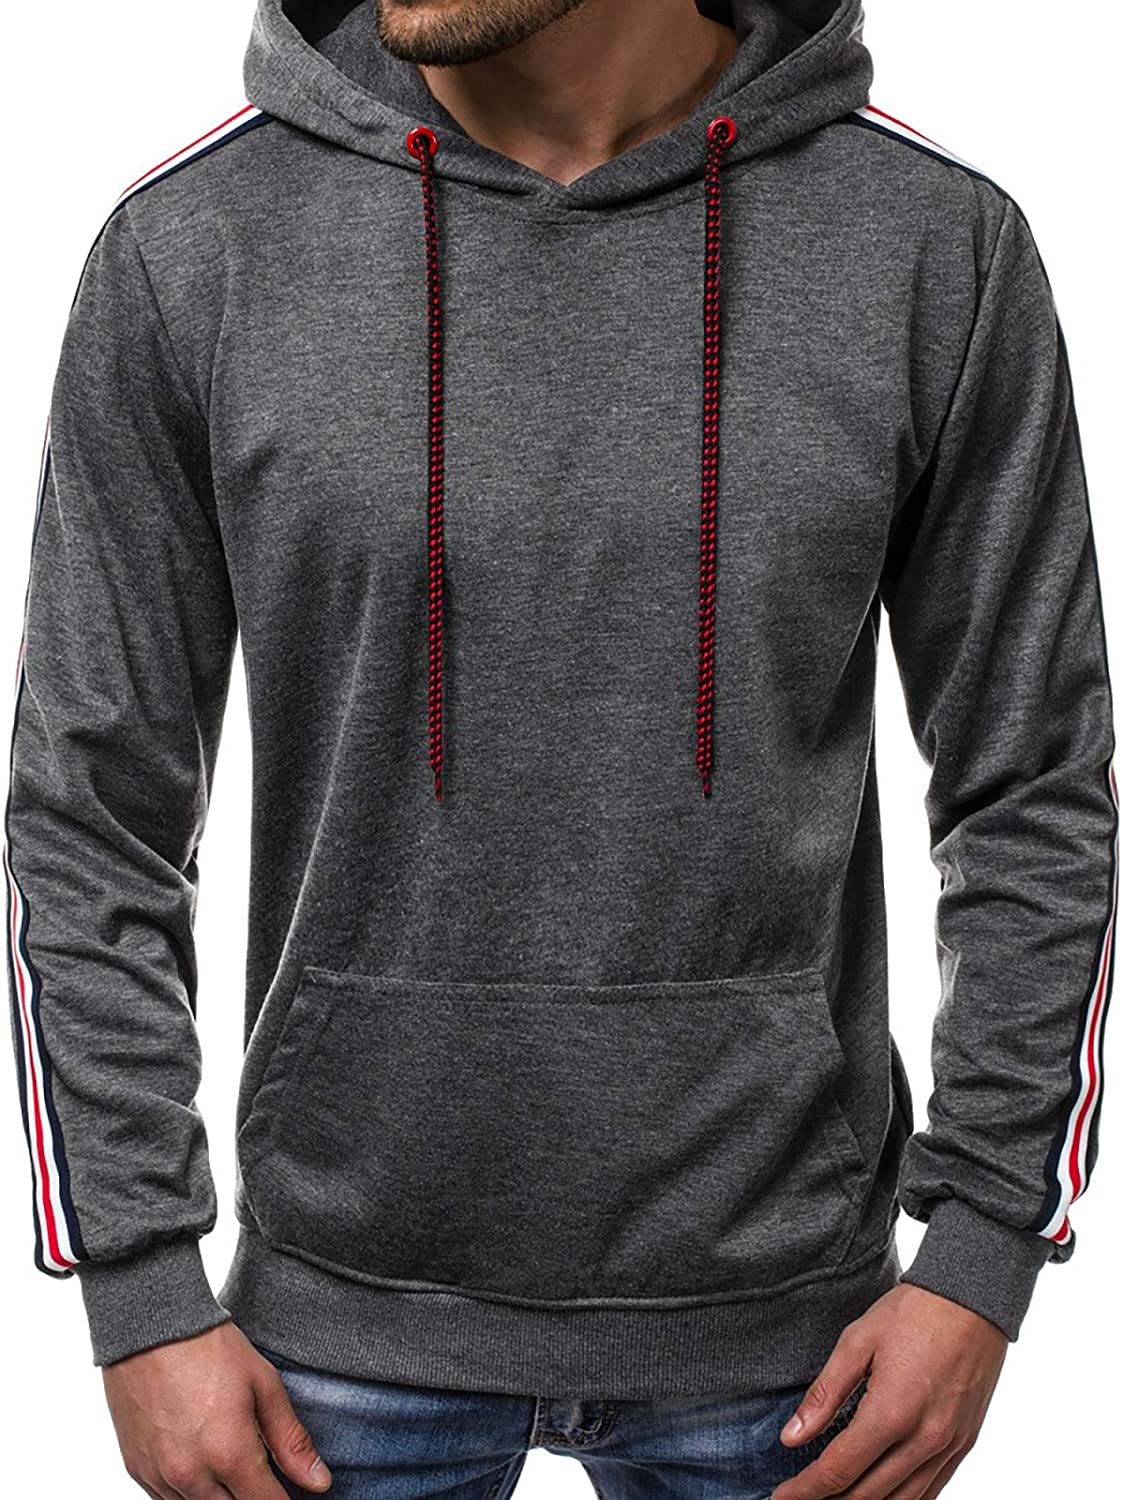 MorwenVeo Max 48% OFF Men's Fashion Athletic Cheap sale Hoodies - T-Shirts Hoode Casual